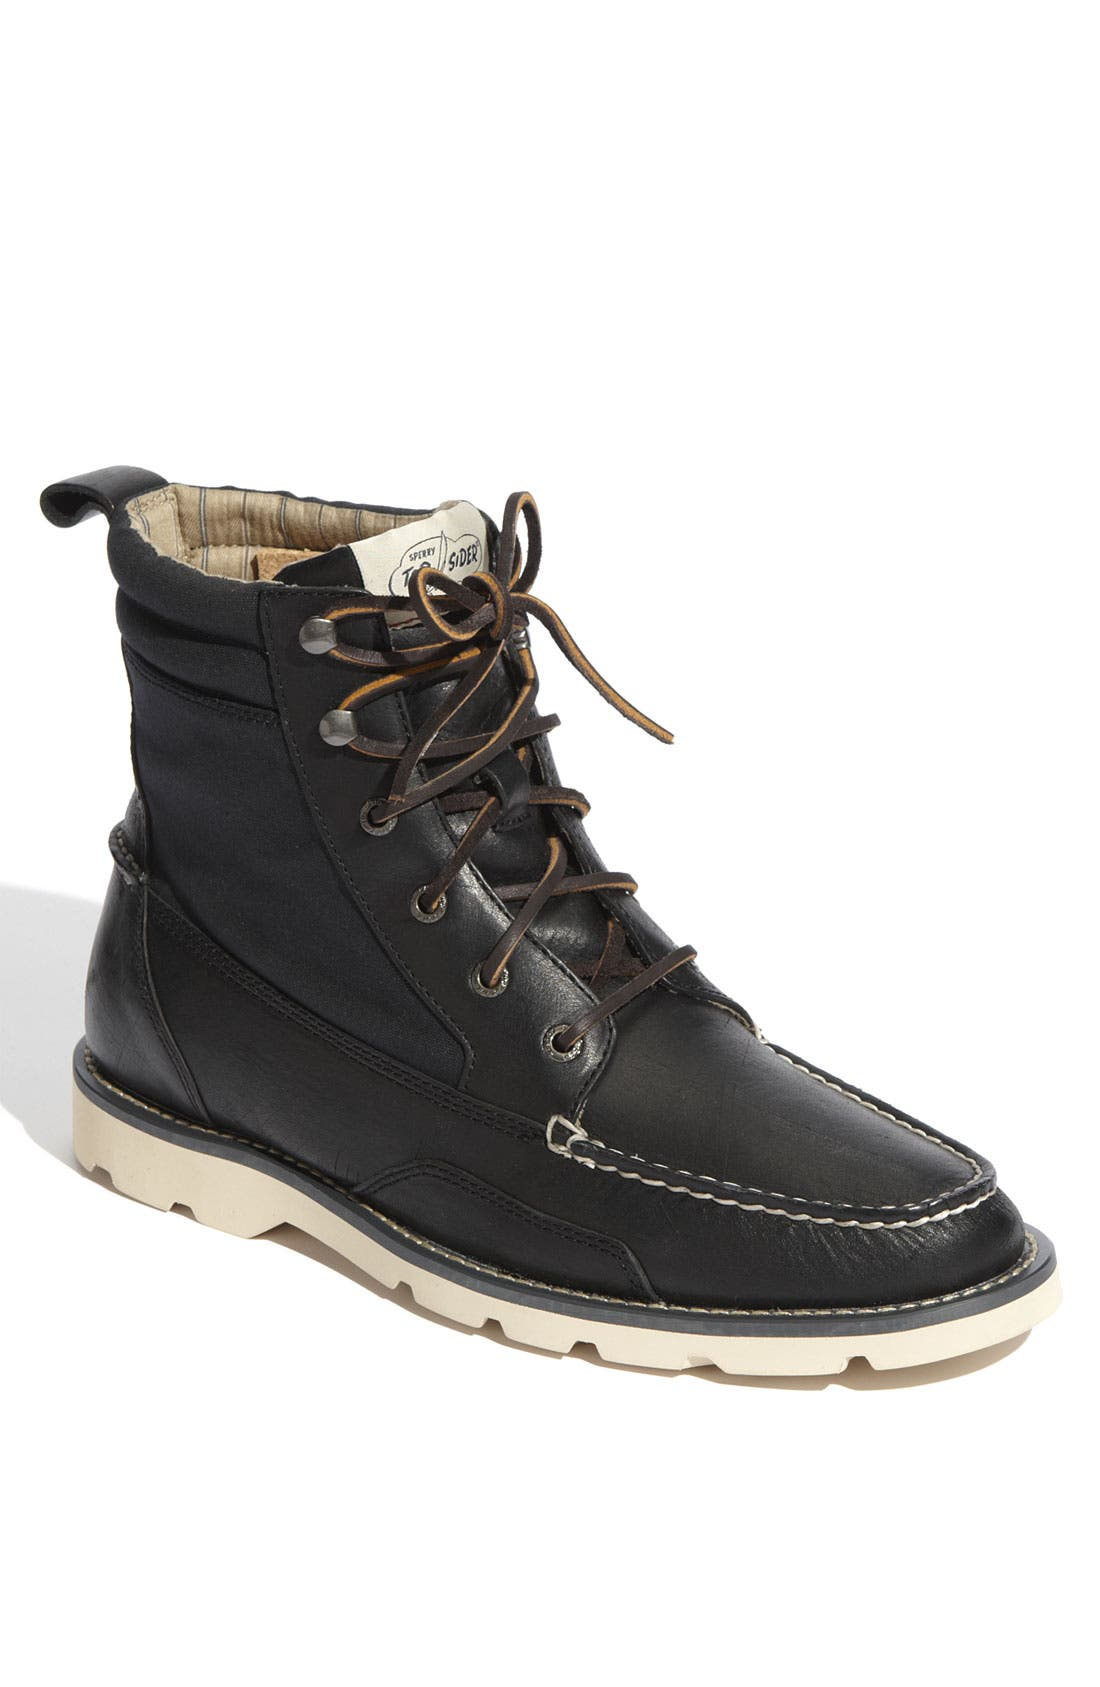 Alternate Image 1 Selected - Sperry Top-Sider® 'Shipyard Rigger' Boot (Online Only)